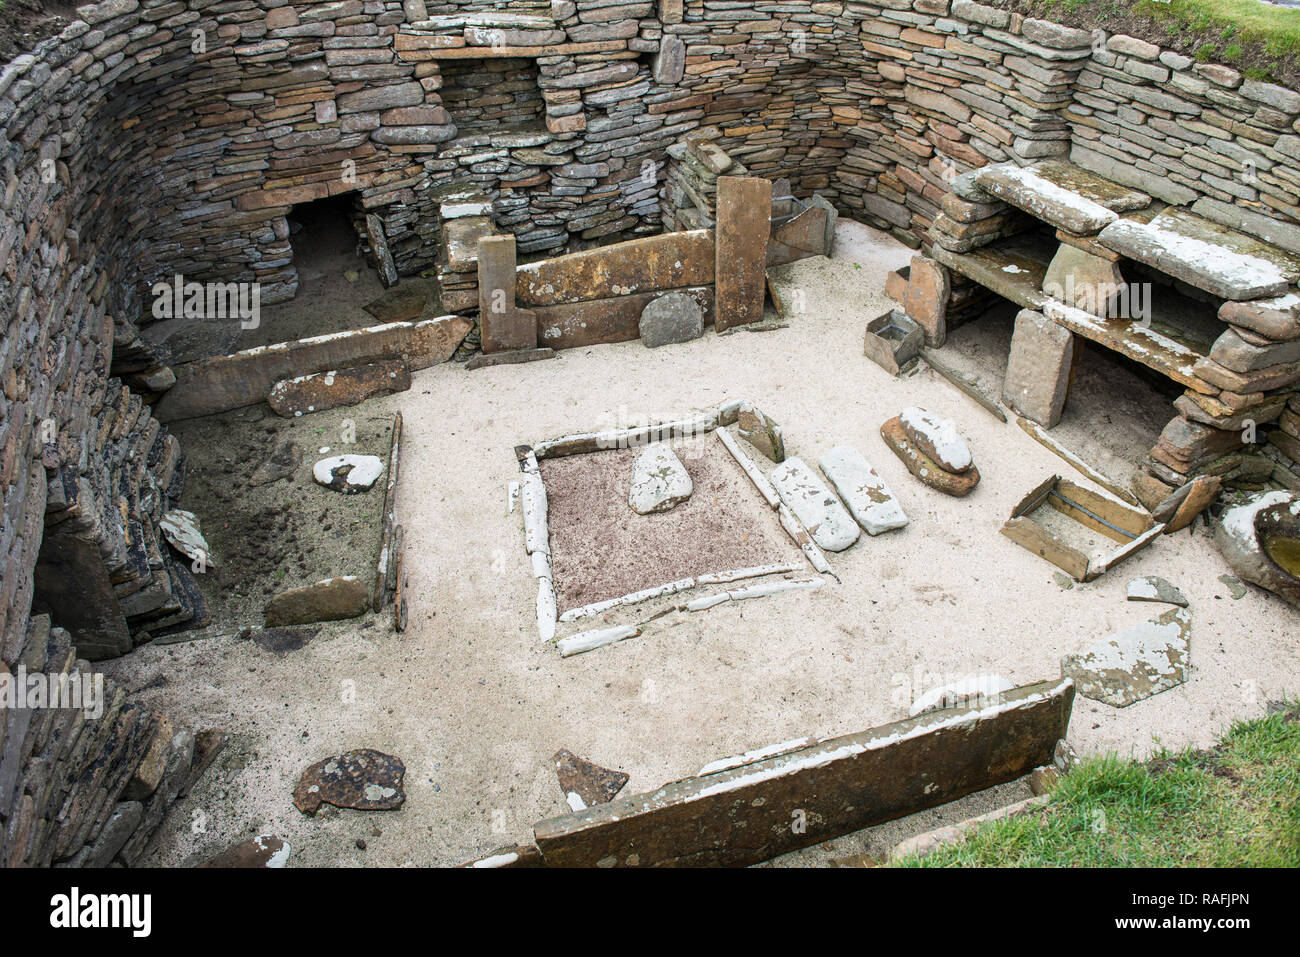 Remains of one of the homes at Skara Brae, a stone-built Neolithic village on the west coast of the Orkney Islands in Scotland Stock Photo